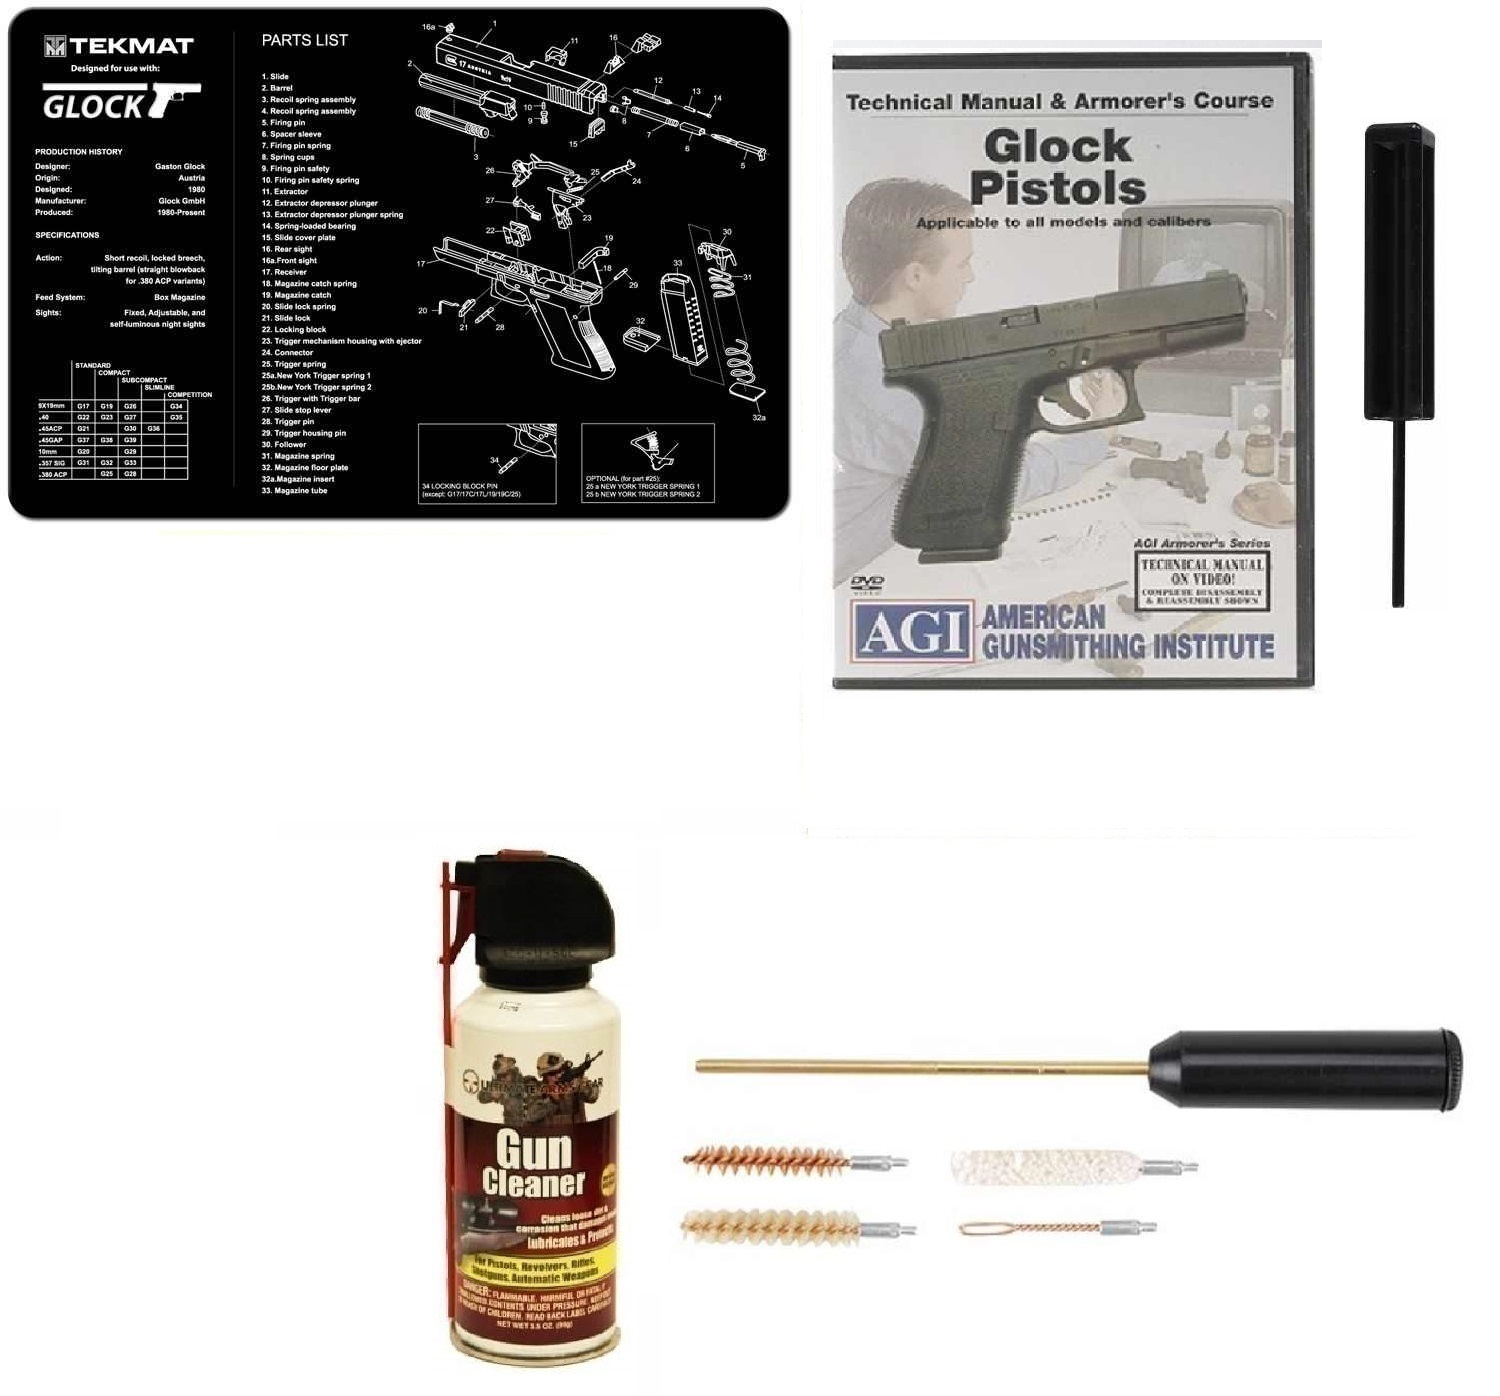 Ultimate Arms Gear Gunsmith & Armorer's Cleaning Bench Gun Mat GLOCK + GT03374 3 32 Punch Takedown Tool + Compact Pocket... by